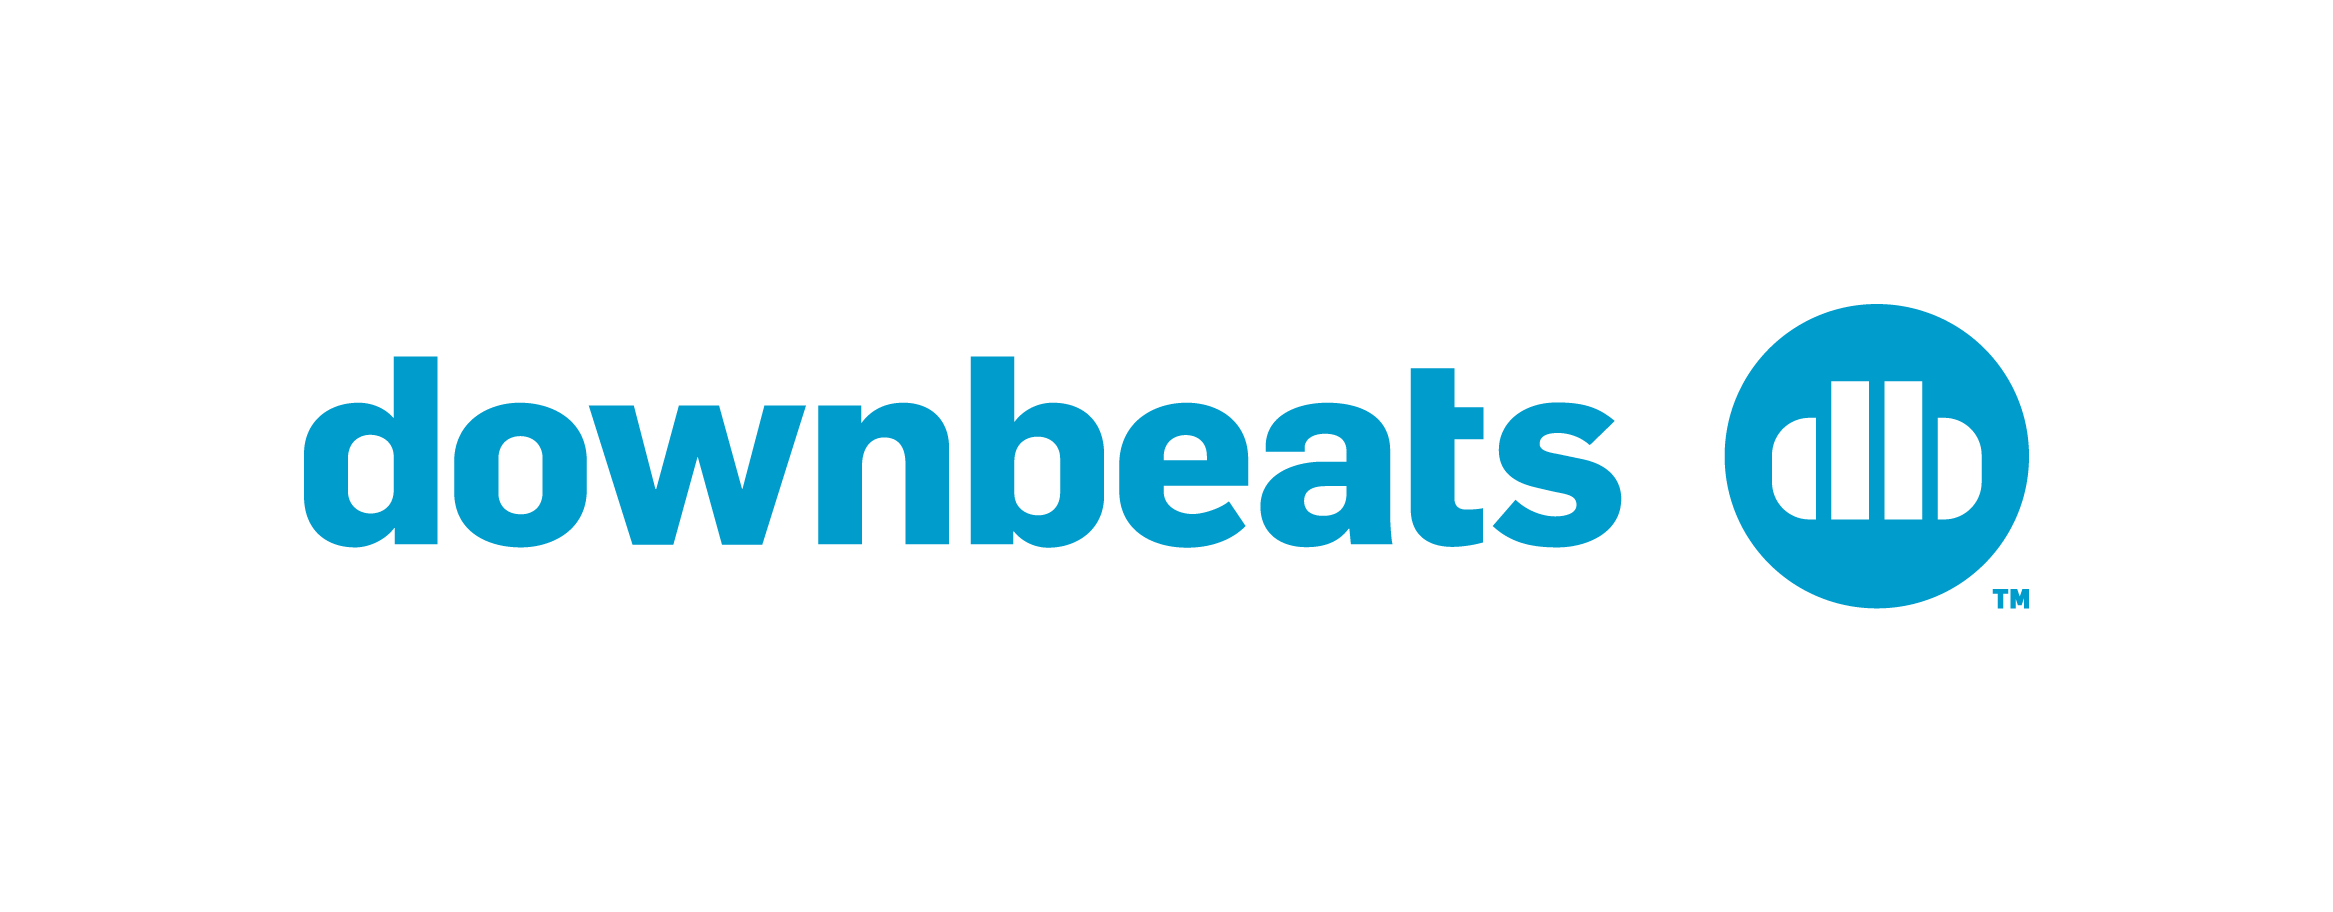 "A brand identity for an aural health company focused on hearing protection for the concert-going set. The symbol features an abstracted ""d"" and ""b,"" in reference to both ""Downbeats"" and the abbreviation for ""decibels"" (db), that combine to resemble a human head and ears."